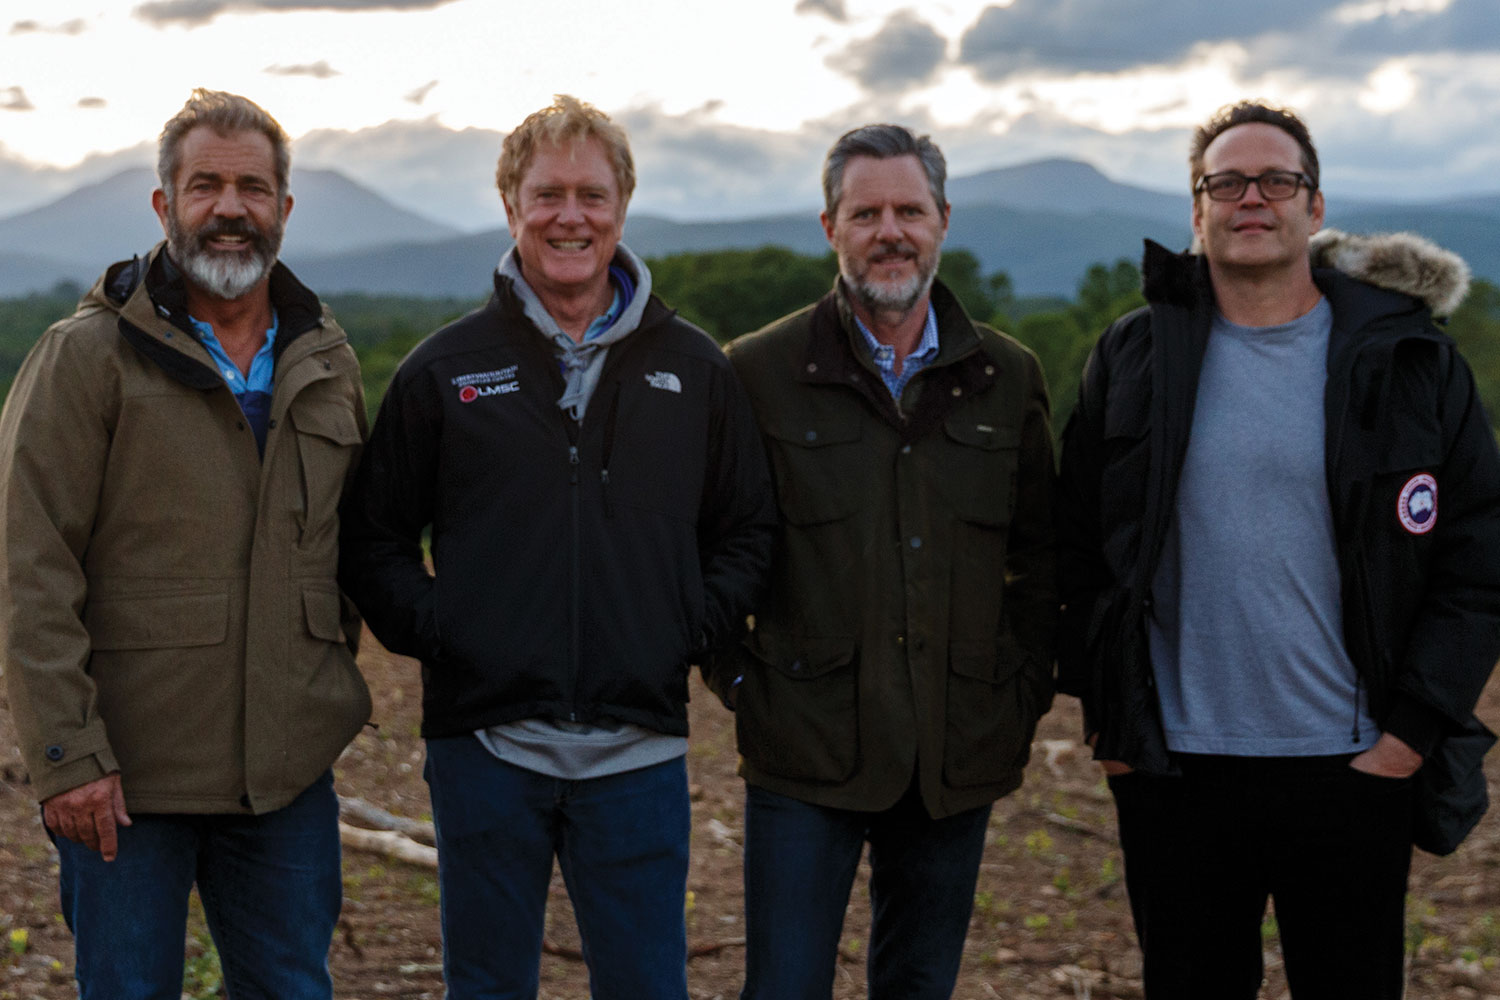 Mel Gibson, Randall Wallace, President Jerry Falwell, and Vince Vaughn on Falwell's farm.